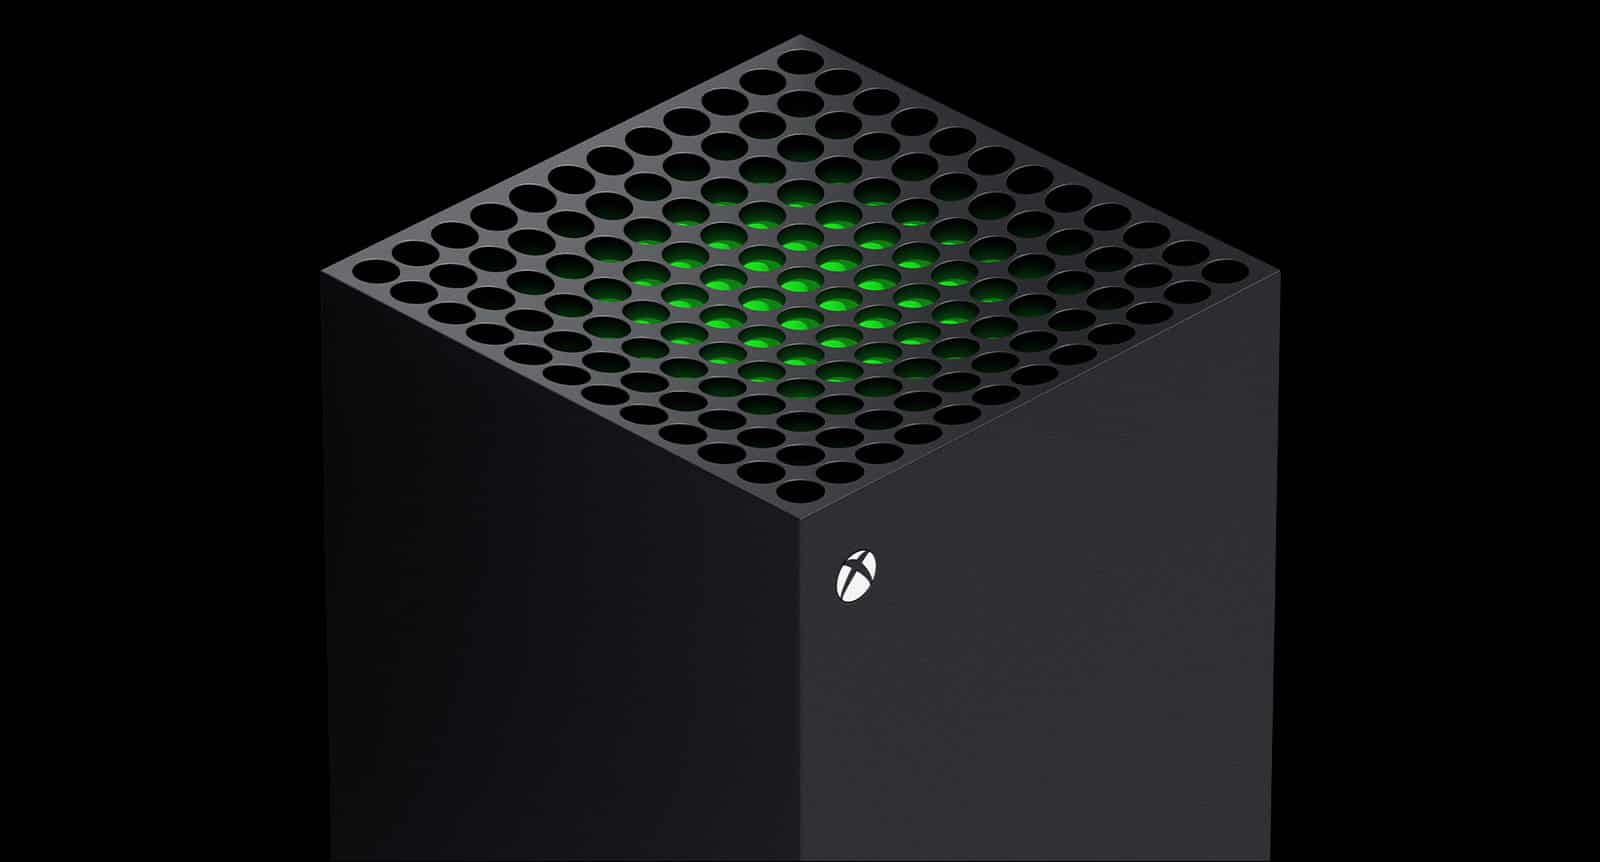 Microsoft Xbox Series X Next-Gen One Smart Delivery